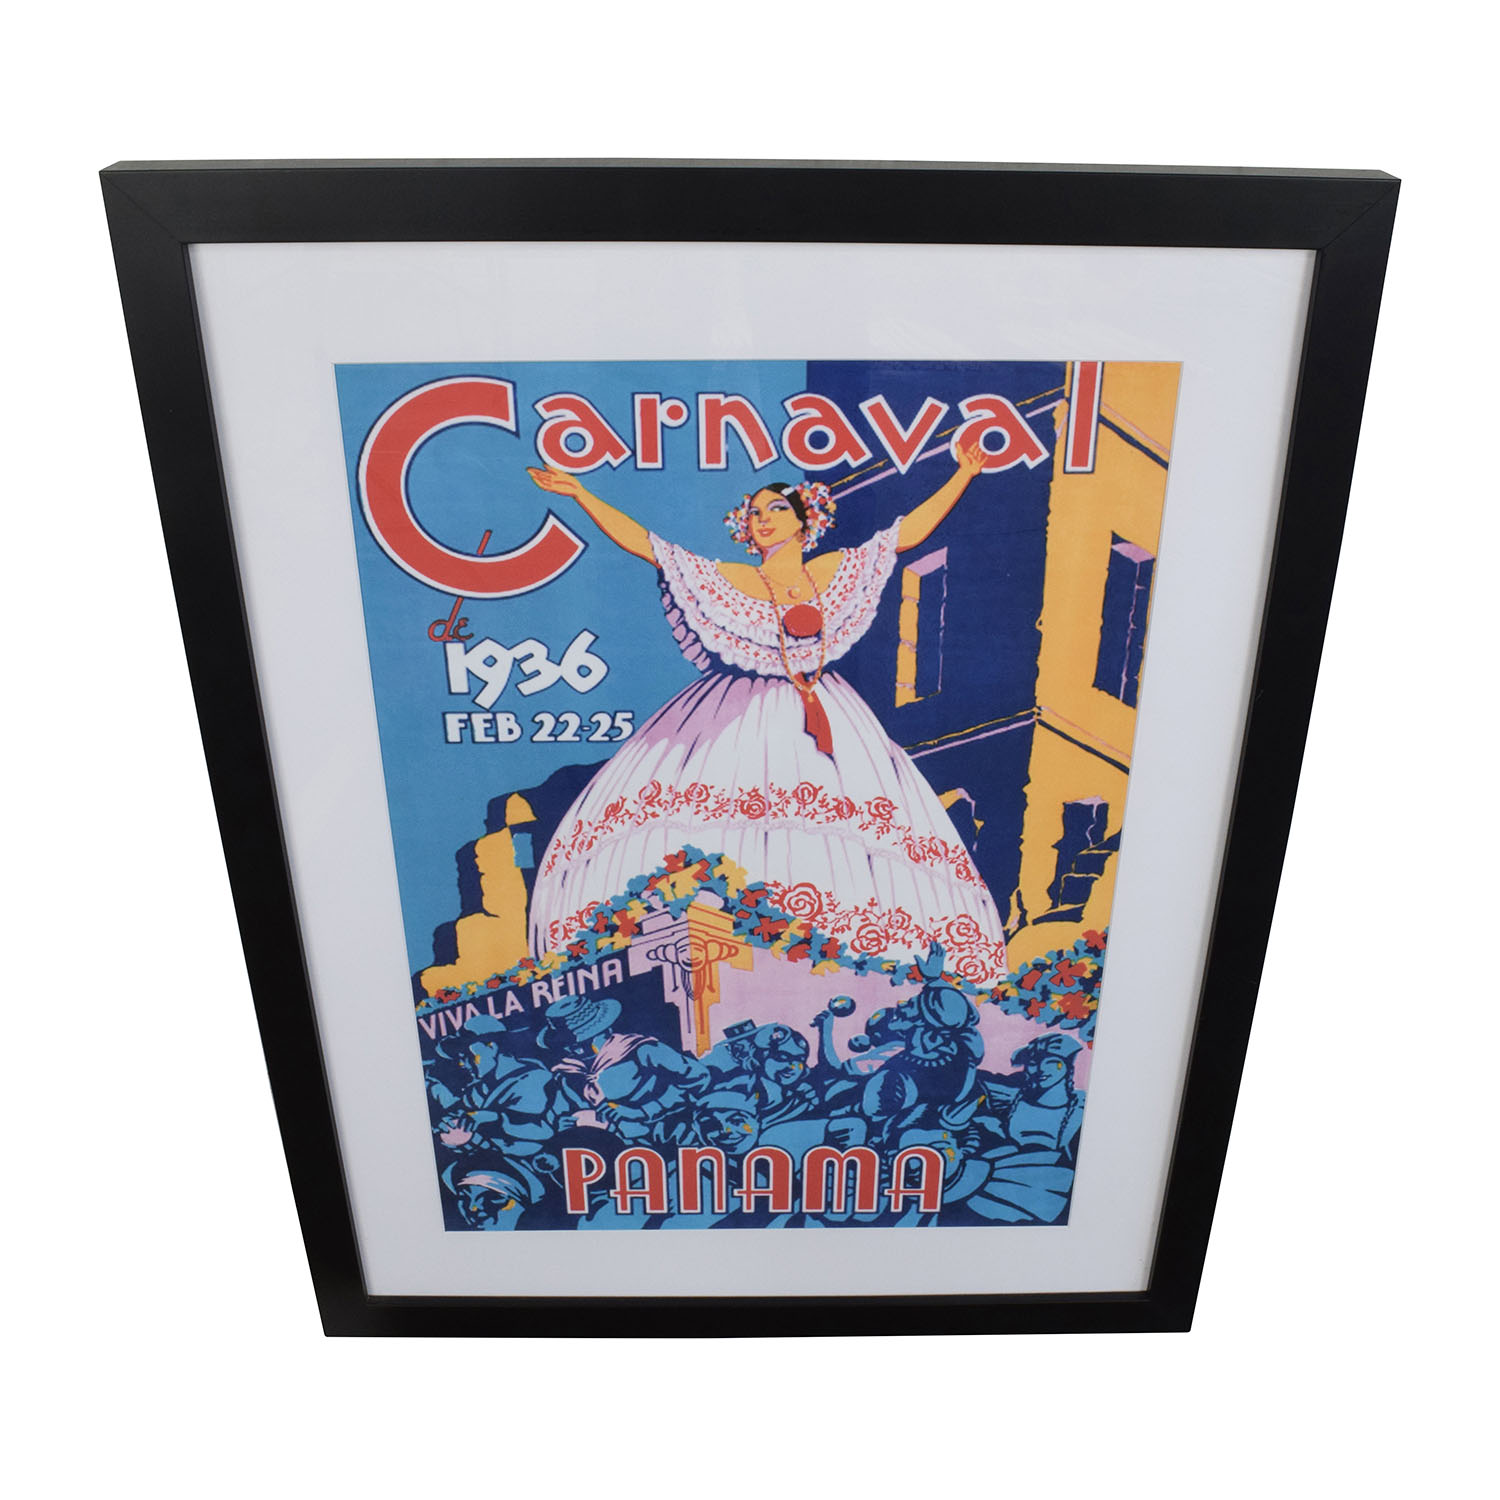 Getty Getty 1936 Panama Carnival Framed Art Print n/a